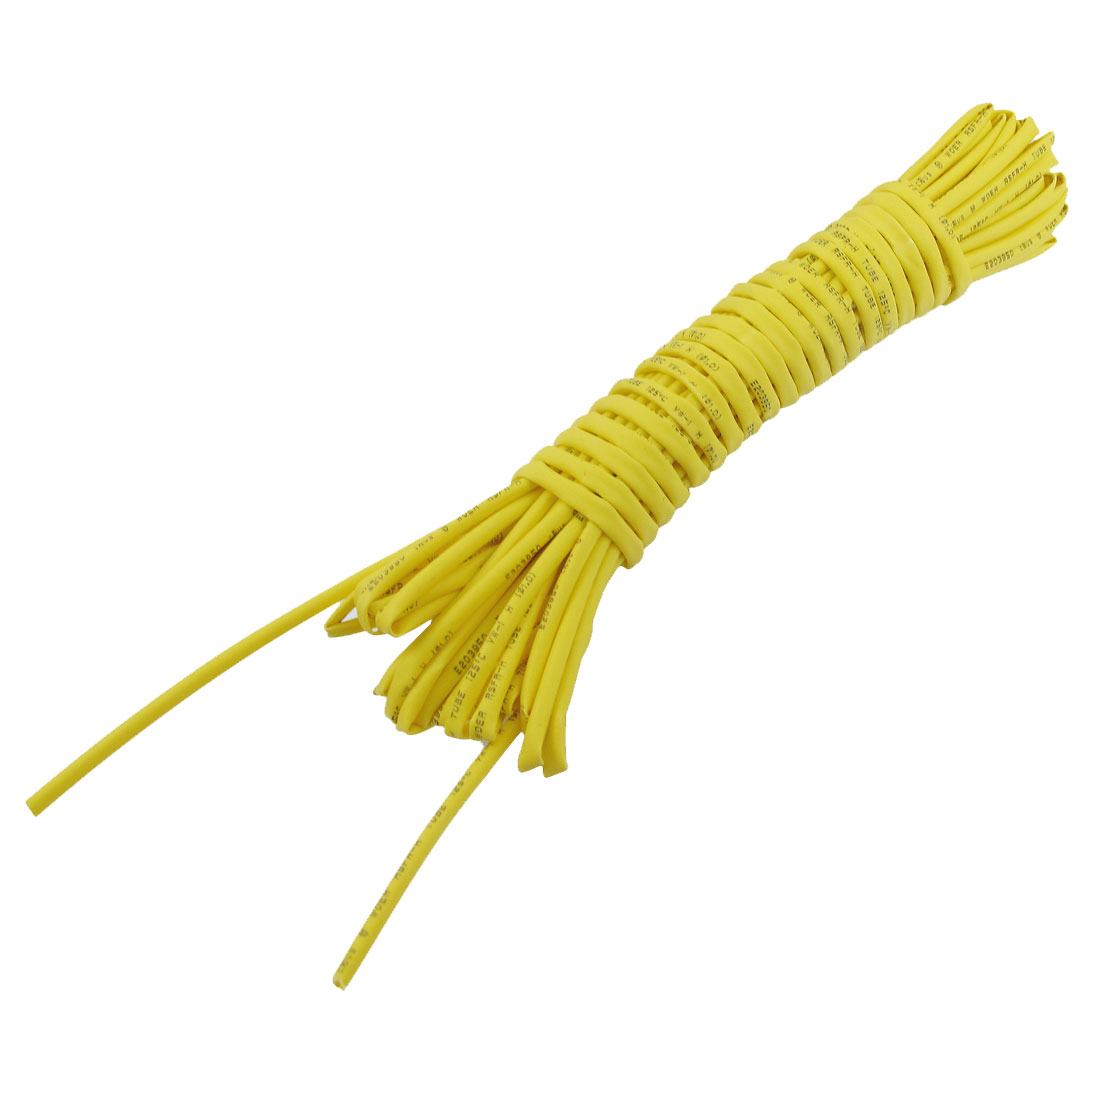 Ratio-2-1-1mm-Dia-Yellow-Polyolefin-Heat-Shrinkable-Tube-6M-19-7Ft